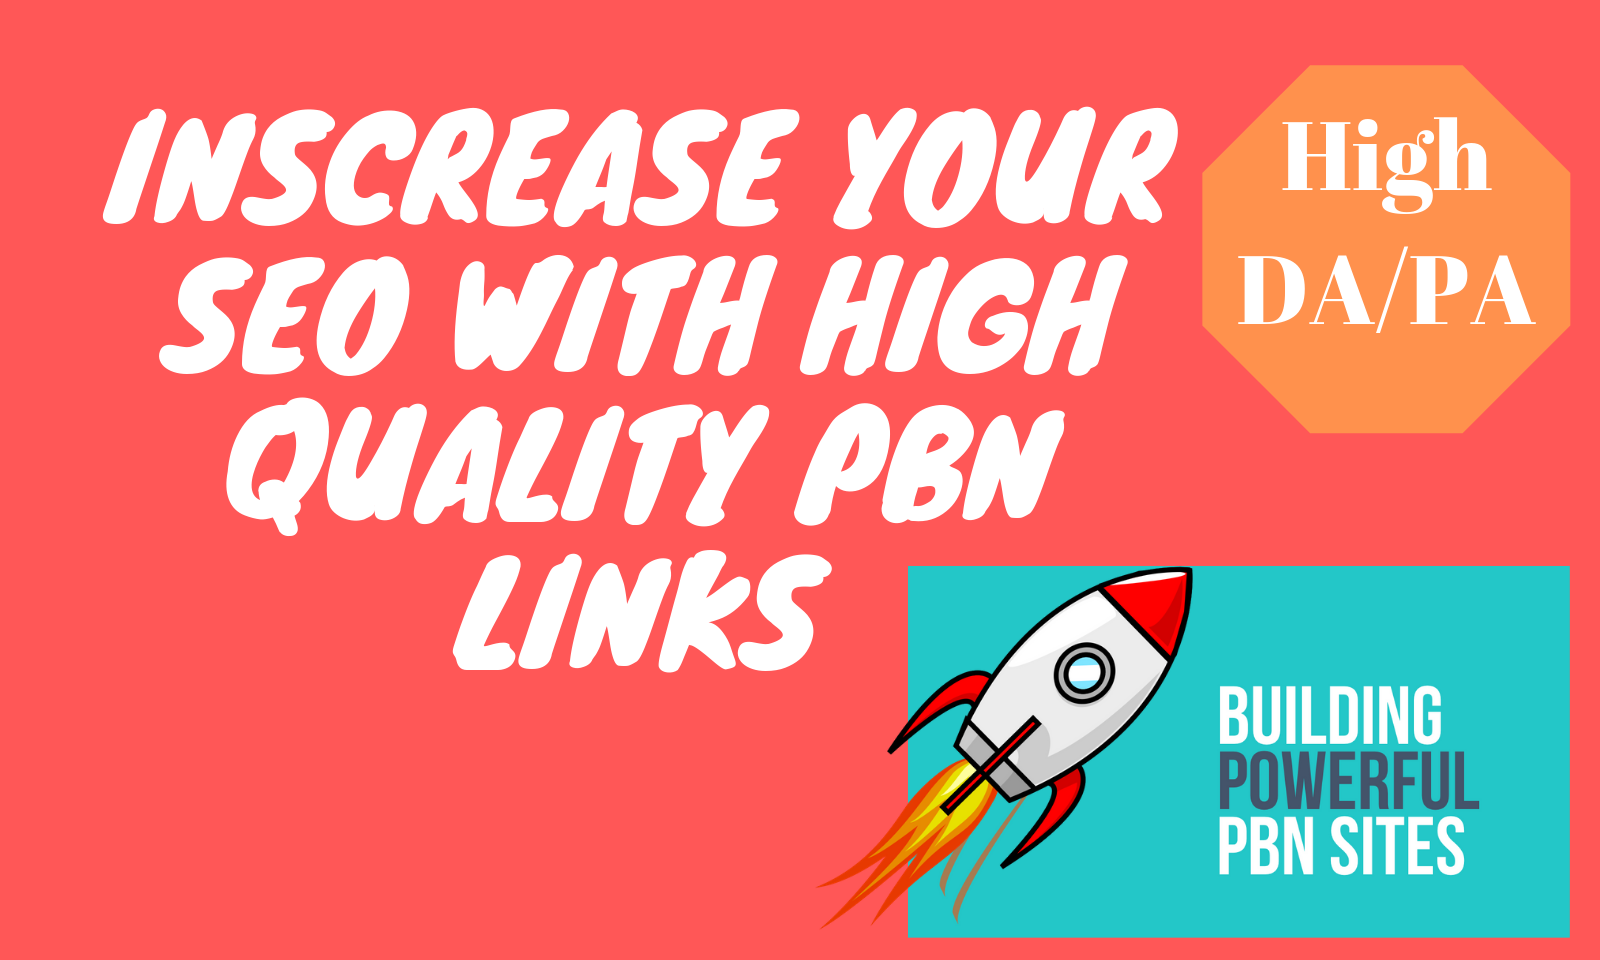 Get 30+ Homepage PBN Backlinks using High DA PA to get Fast Ranking